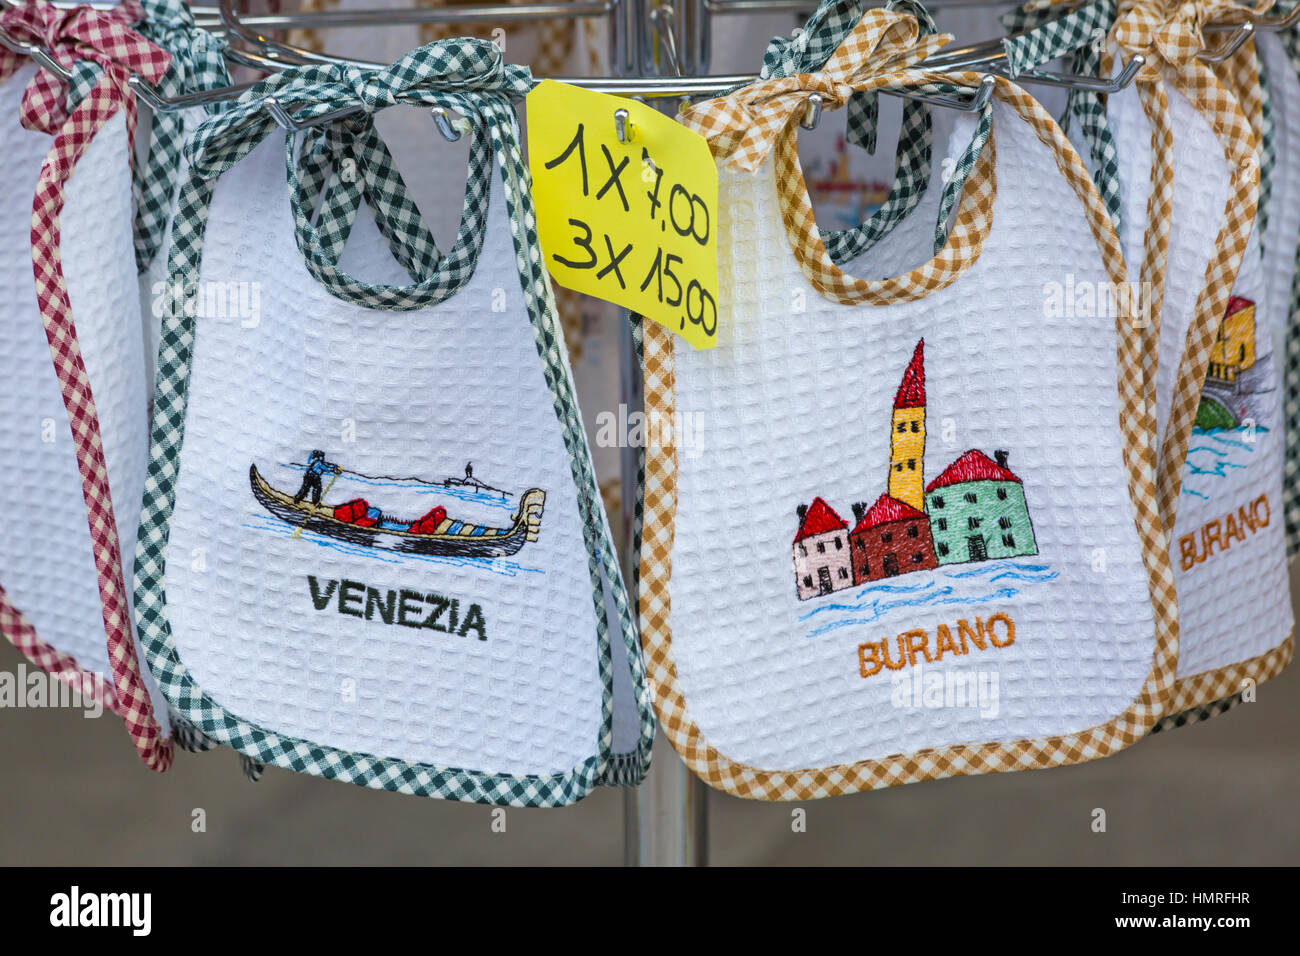 Baby souvenir bibs for sale at Burano, Venice, Italy in January - Stock Image